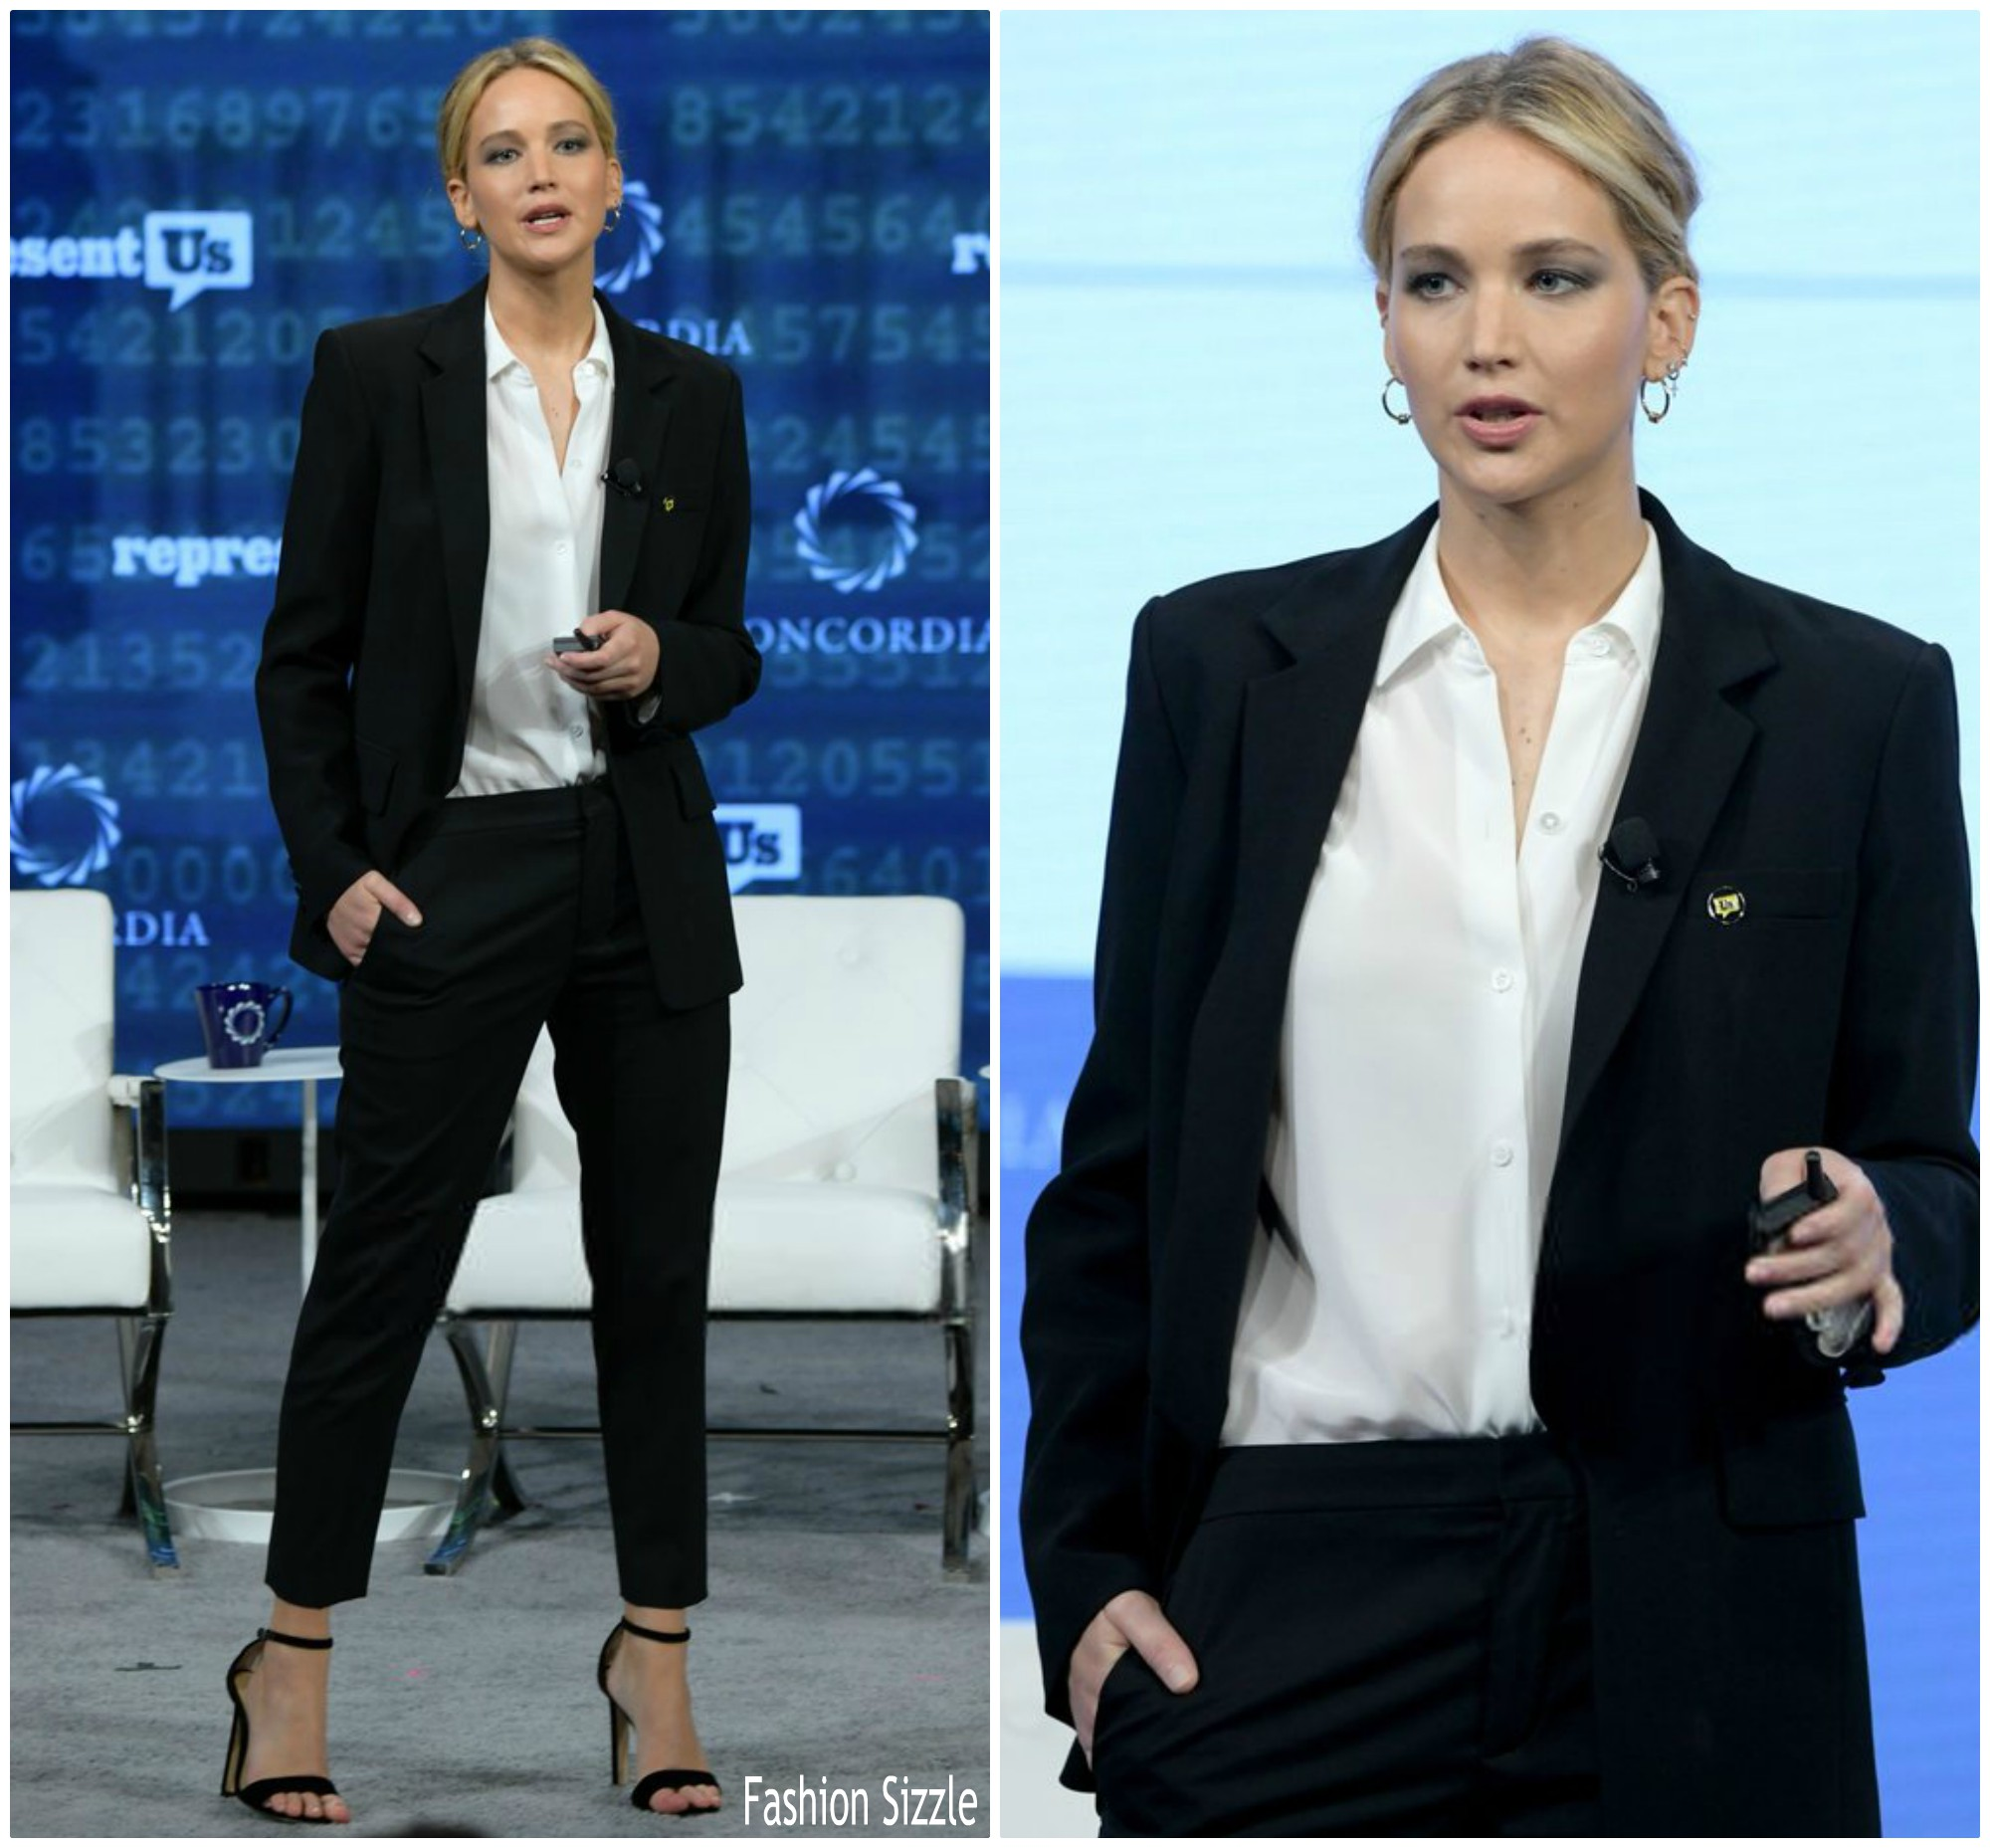 jennifer-lawerence-2018-concordia-annual-summit-day-2-in-new-york